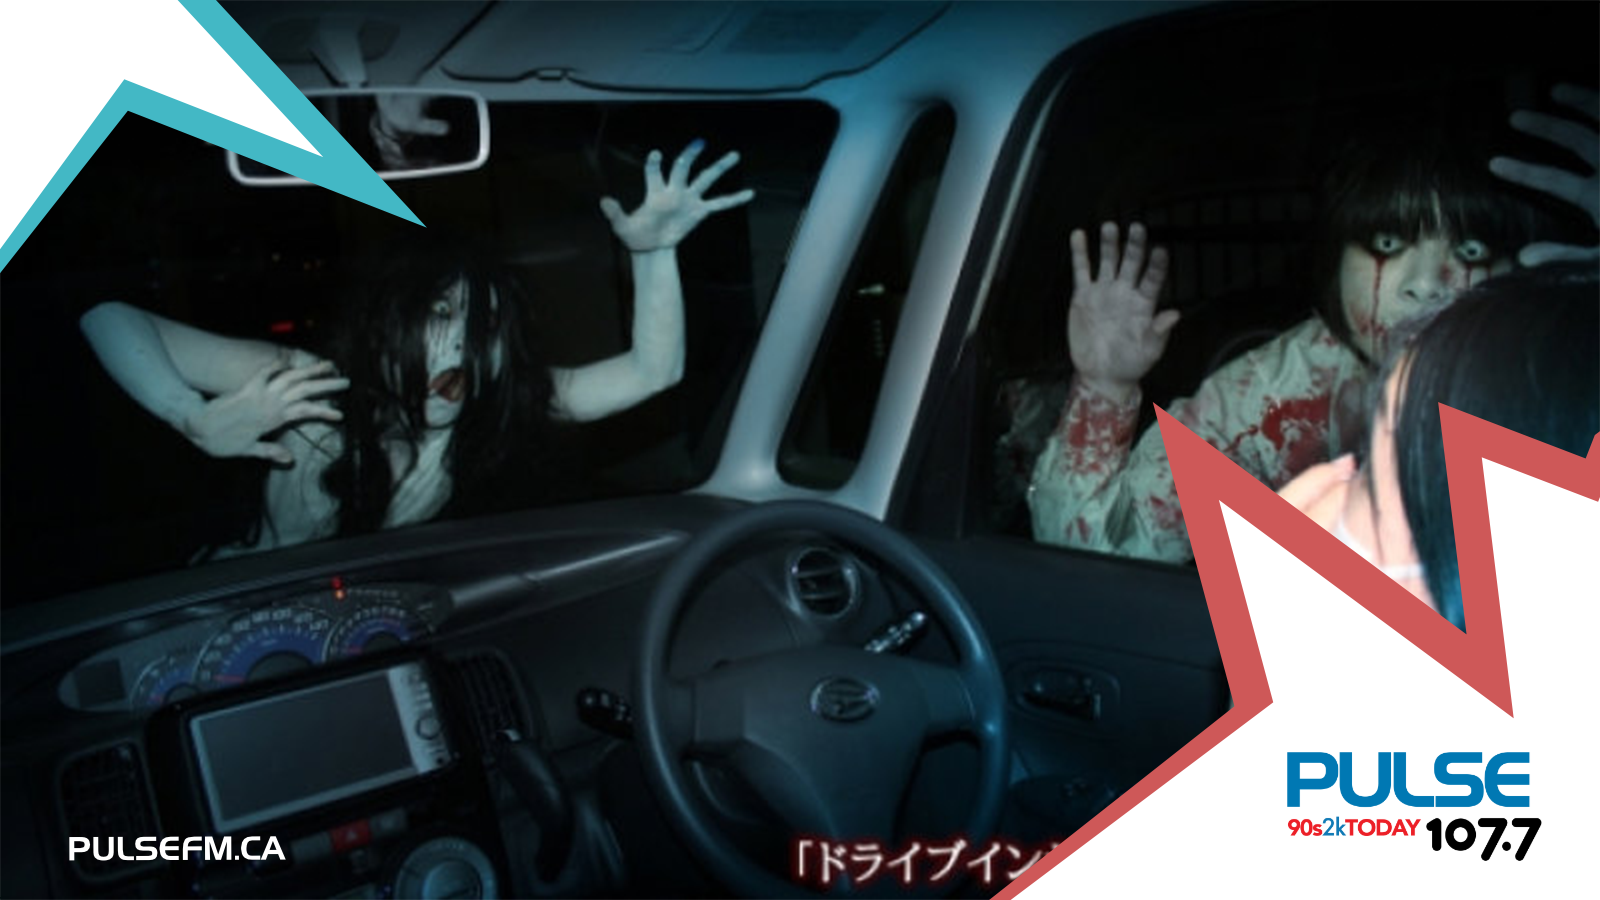 The world's first drive-thru haunted house is here! Do you dare?